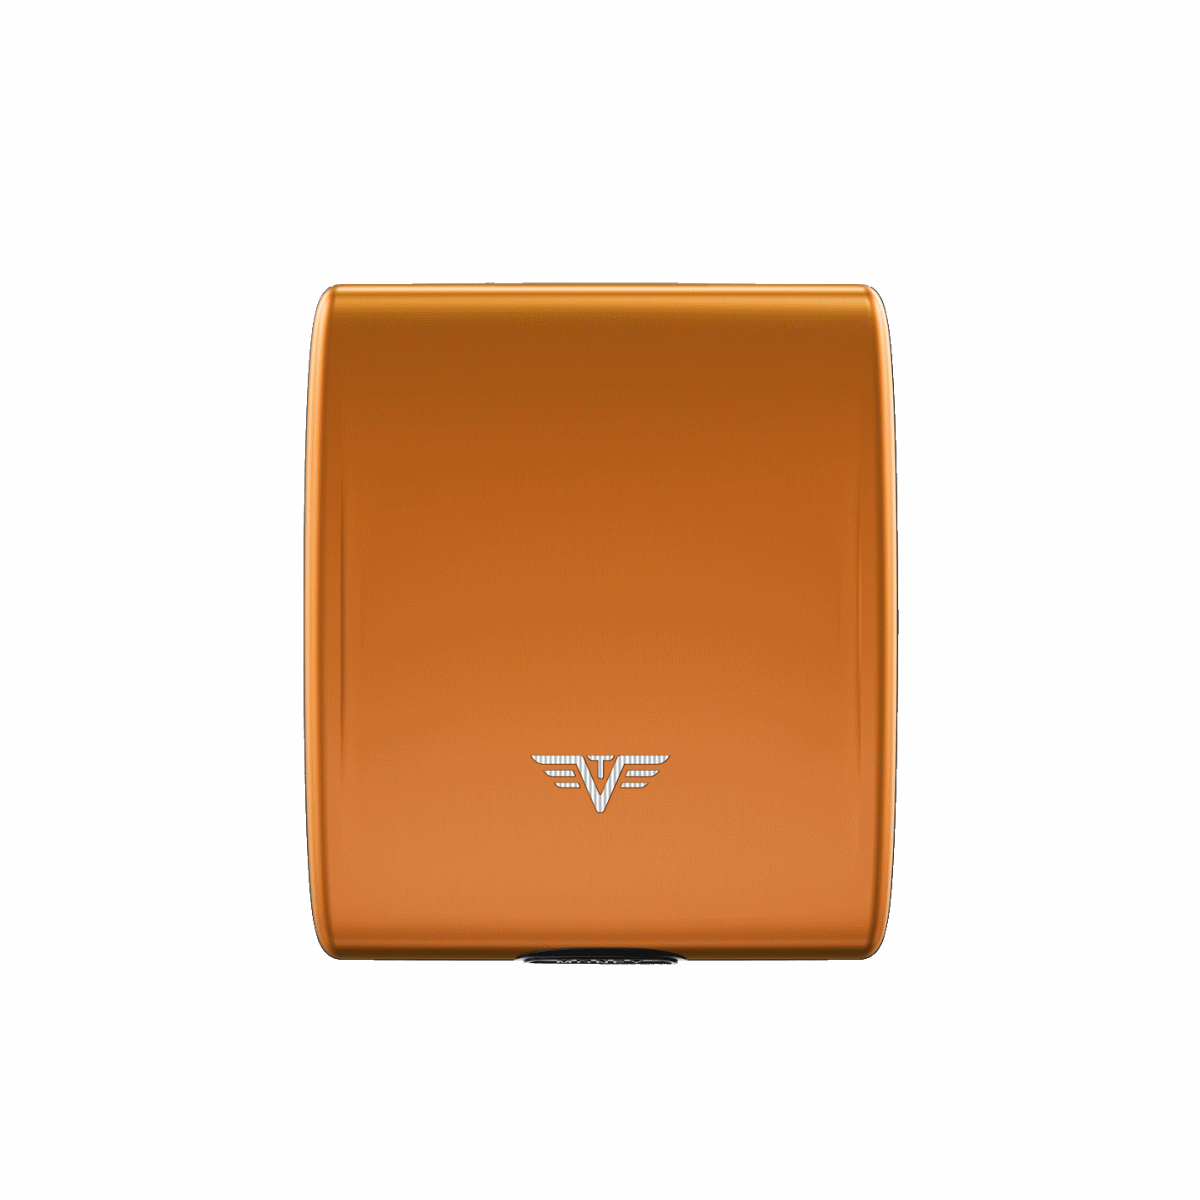 TRU VIRTU Aluminum Wallet Beluga - Money & Cards - Orange